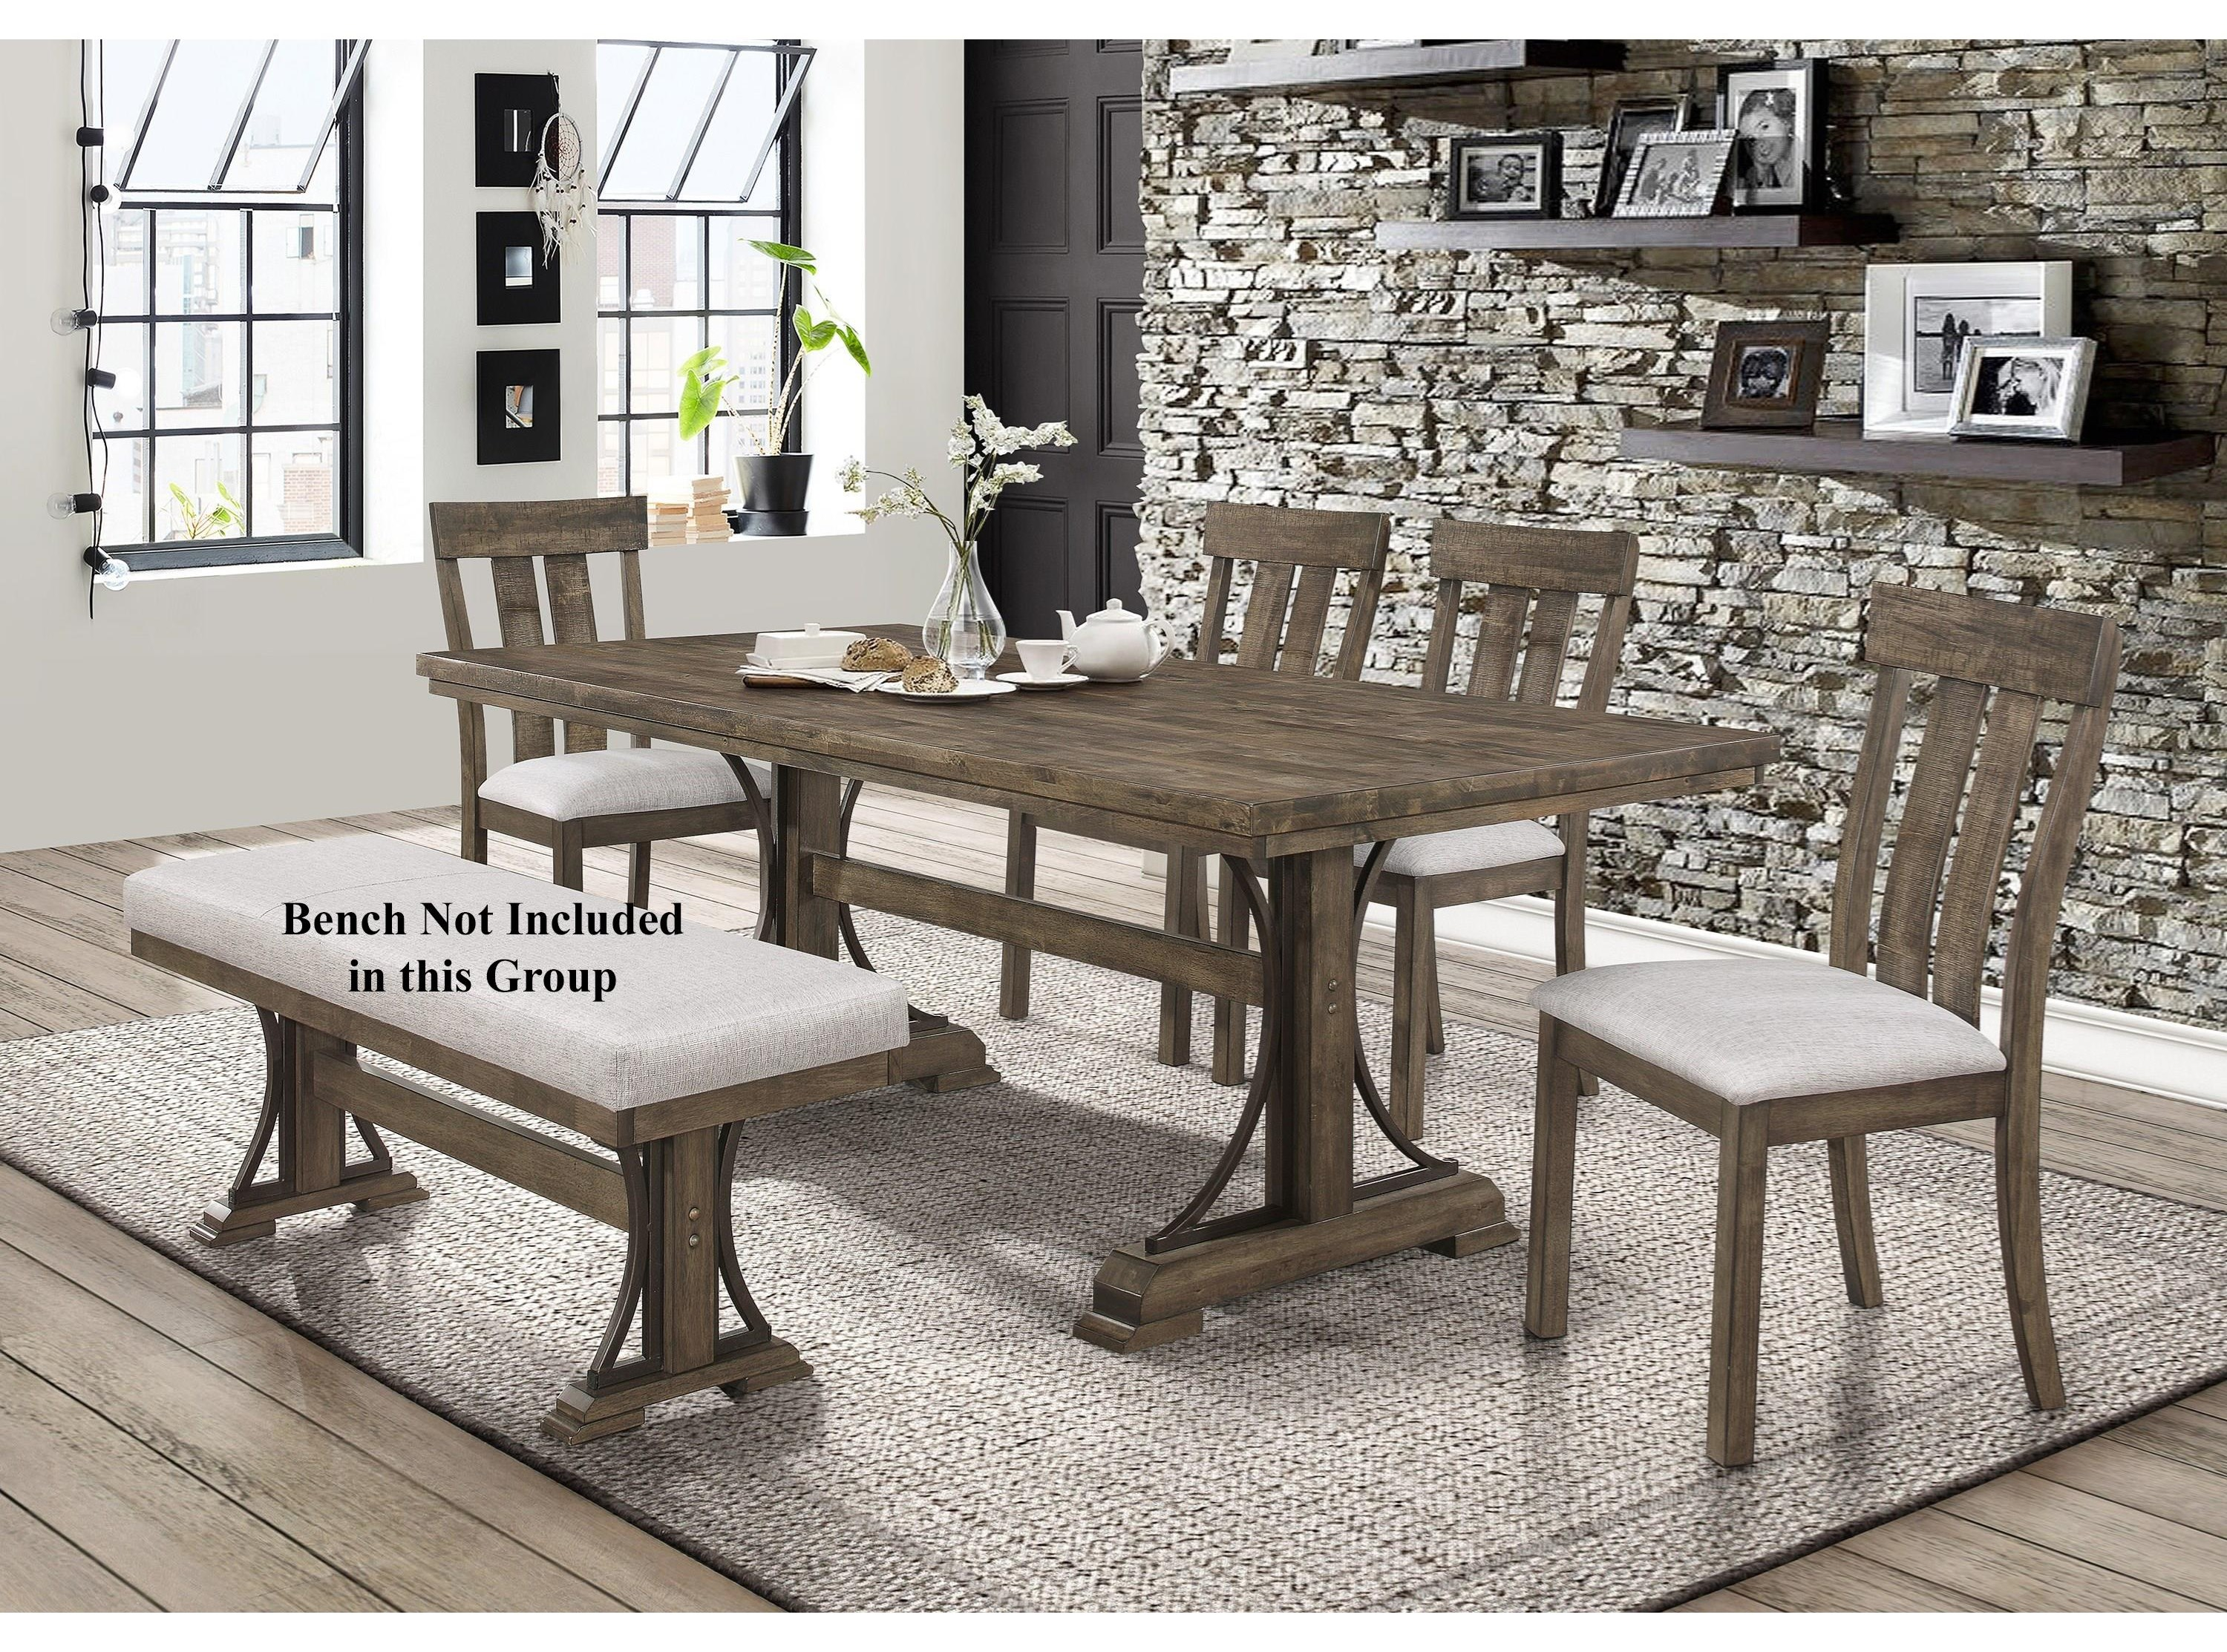 Quincy 5 Piece Table and Chair Set by Crown Mark at Wayside Furniture